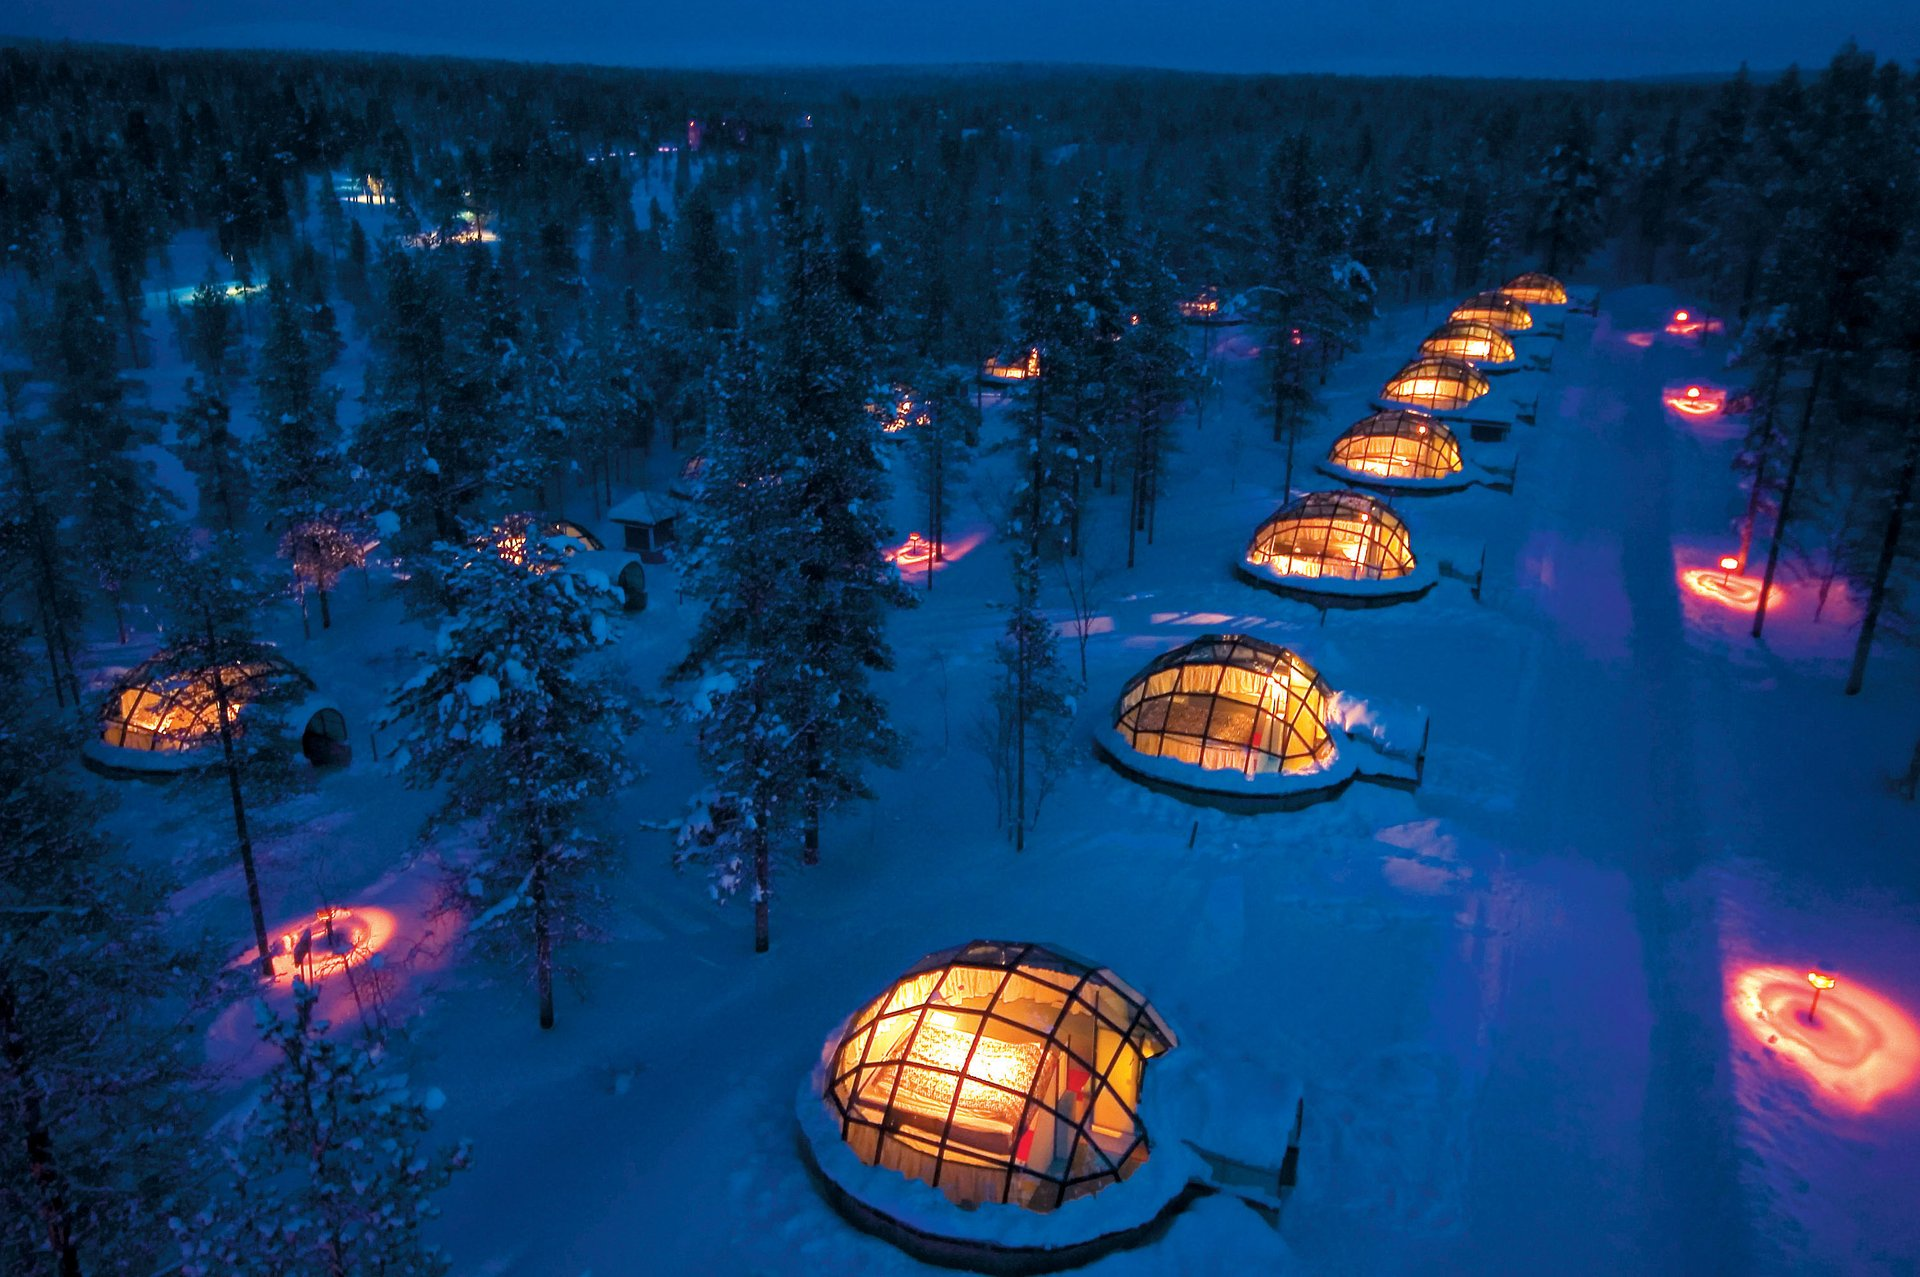 Stay in the Glass Igloo in Finland 2020 - Best Time